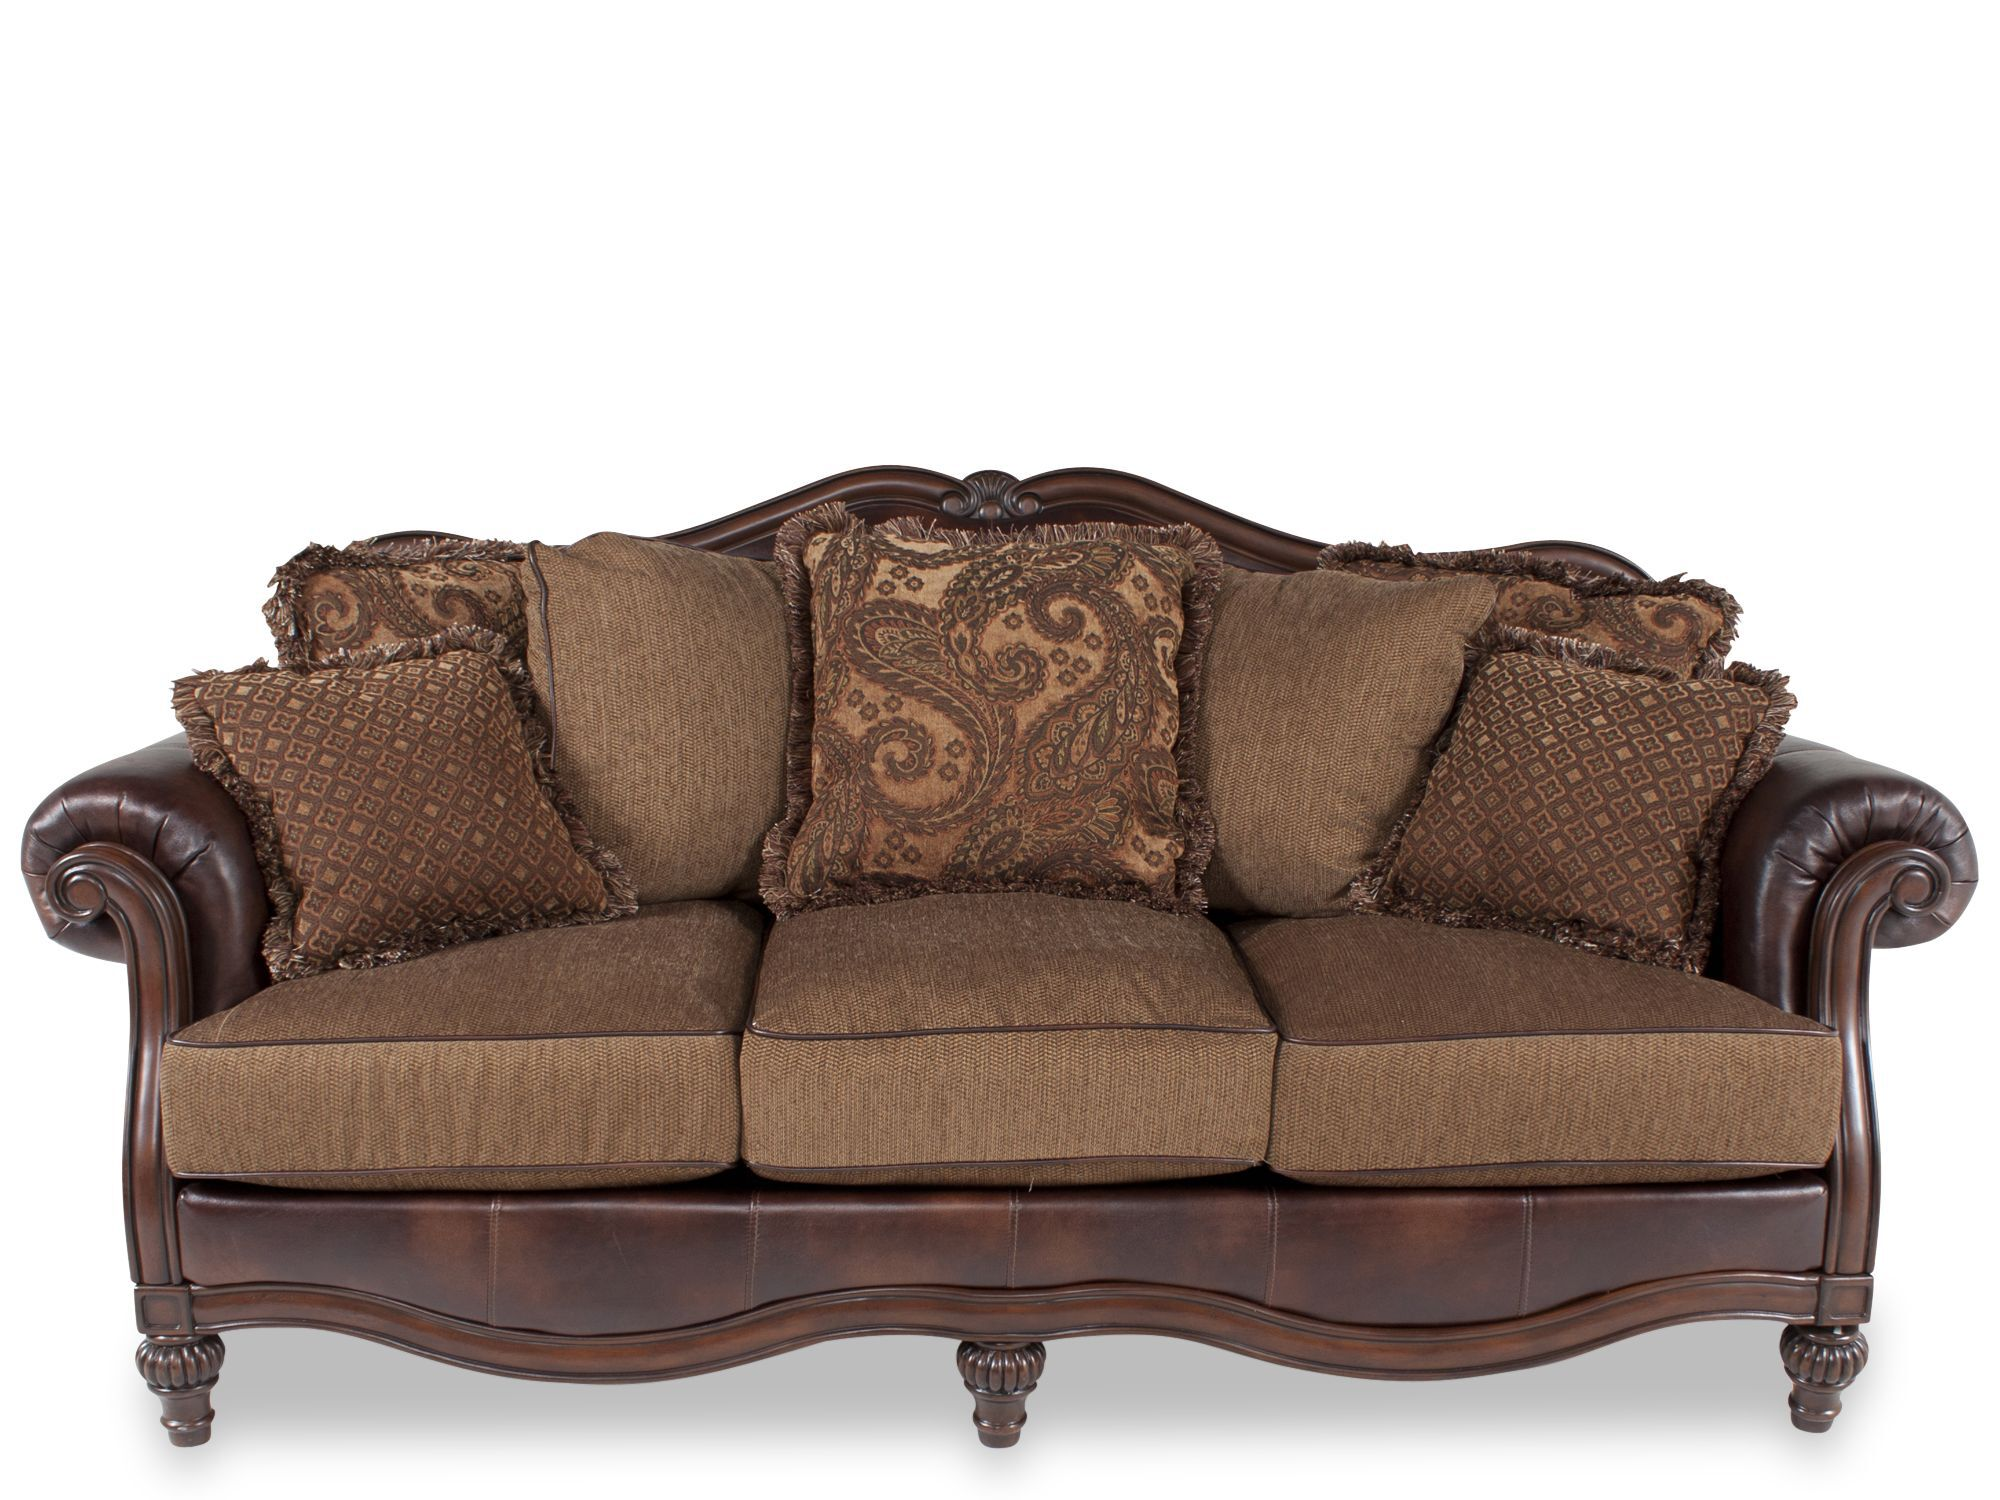 Traditional 91 Rolled Arm Sofa in Brown Mathis Brothers Furniture